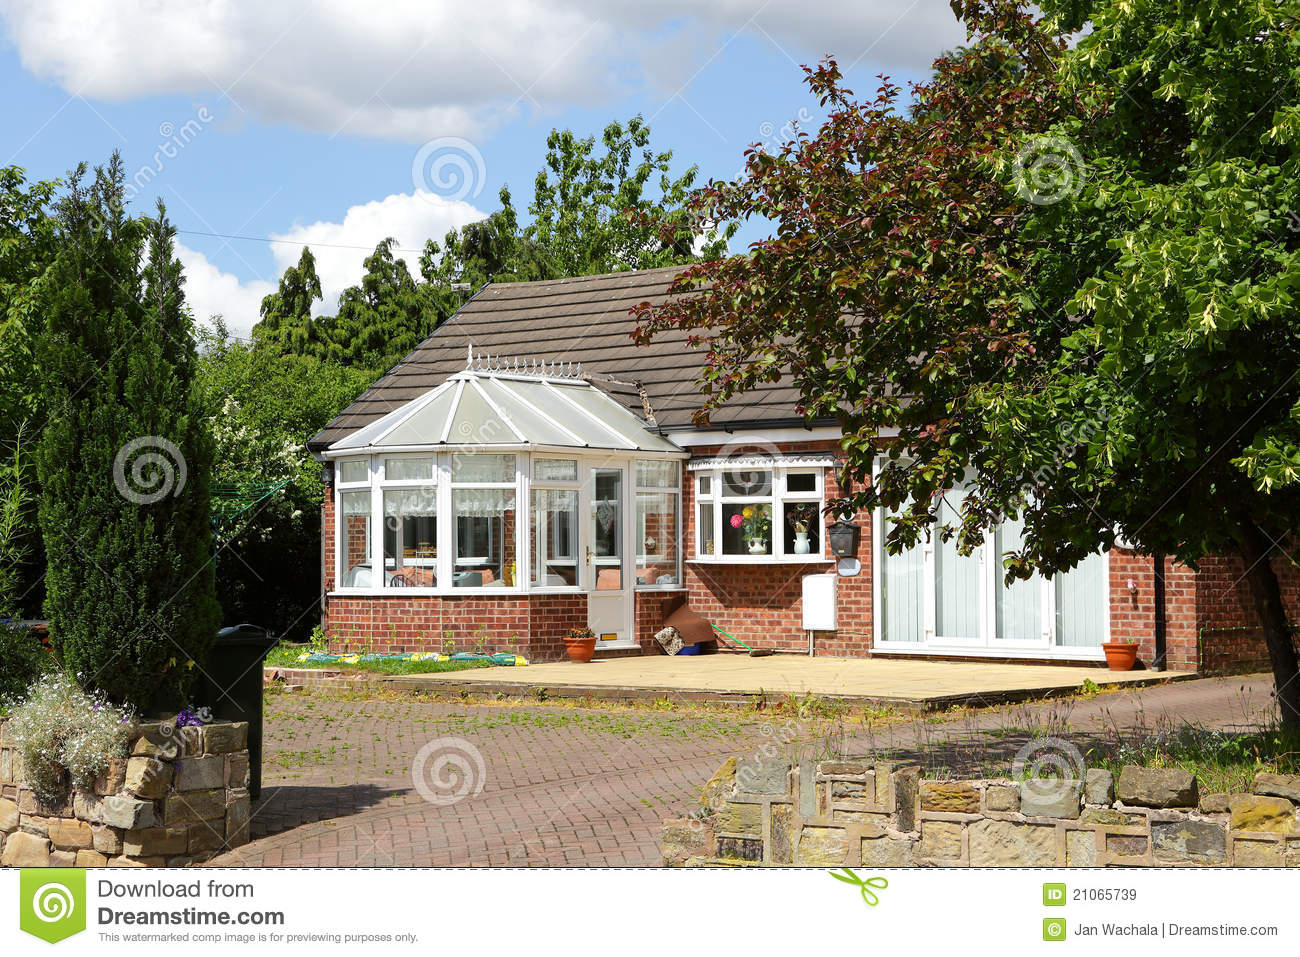 Classic house with garden royalty free stock images for Classic house landscape